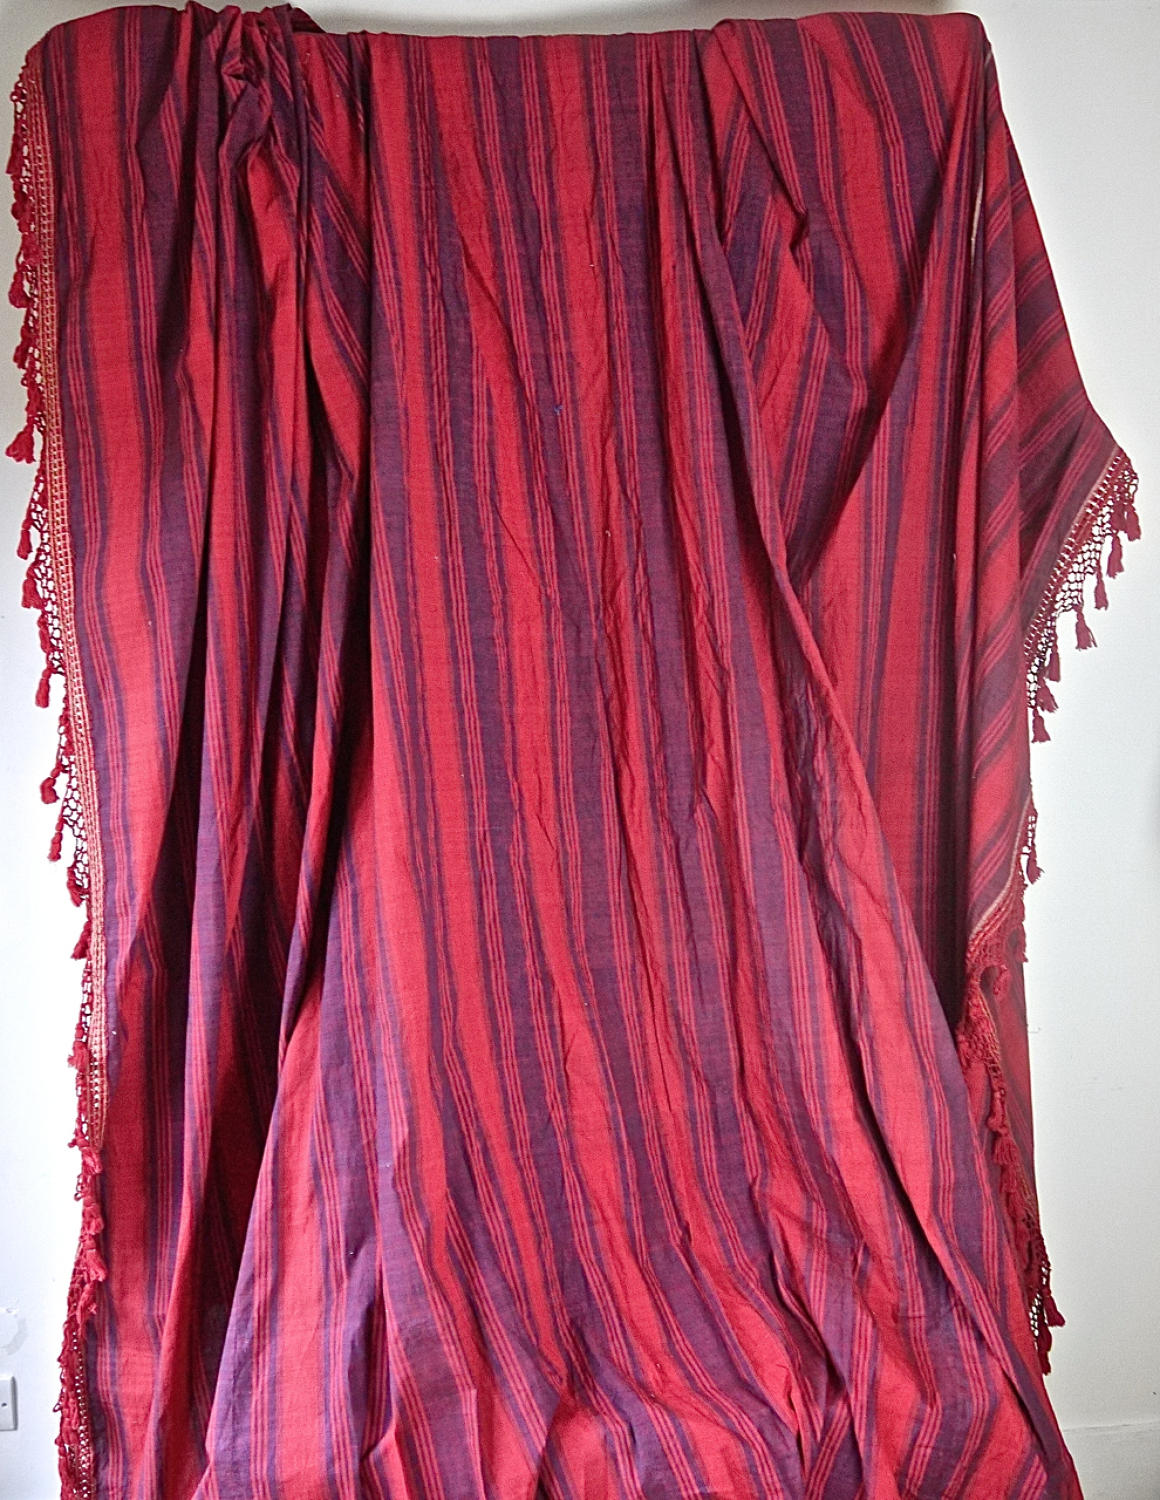 Late 18th century French indigo and red striped curtain